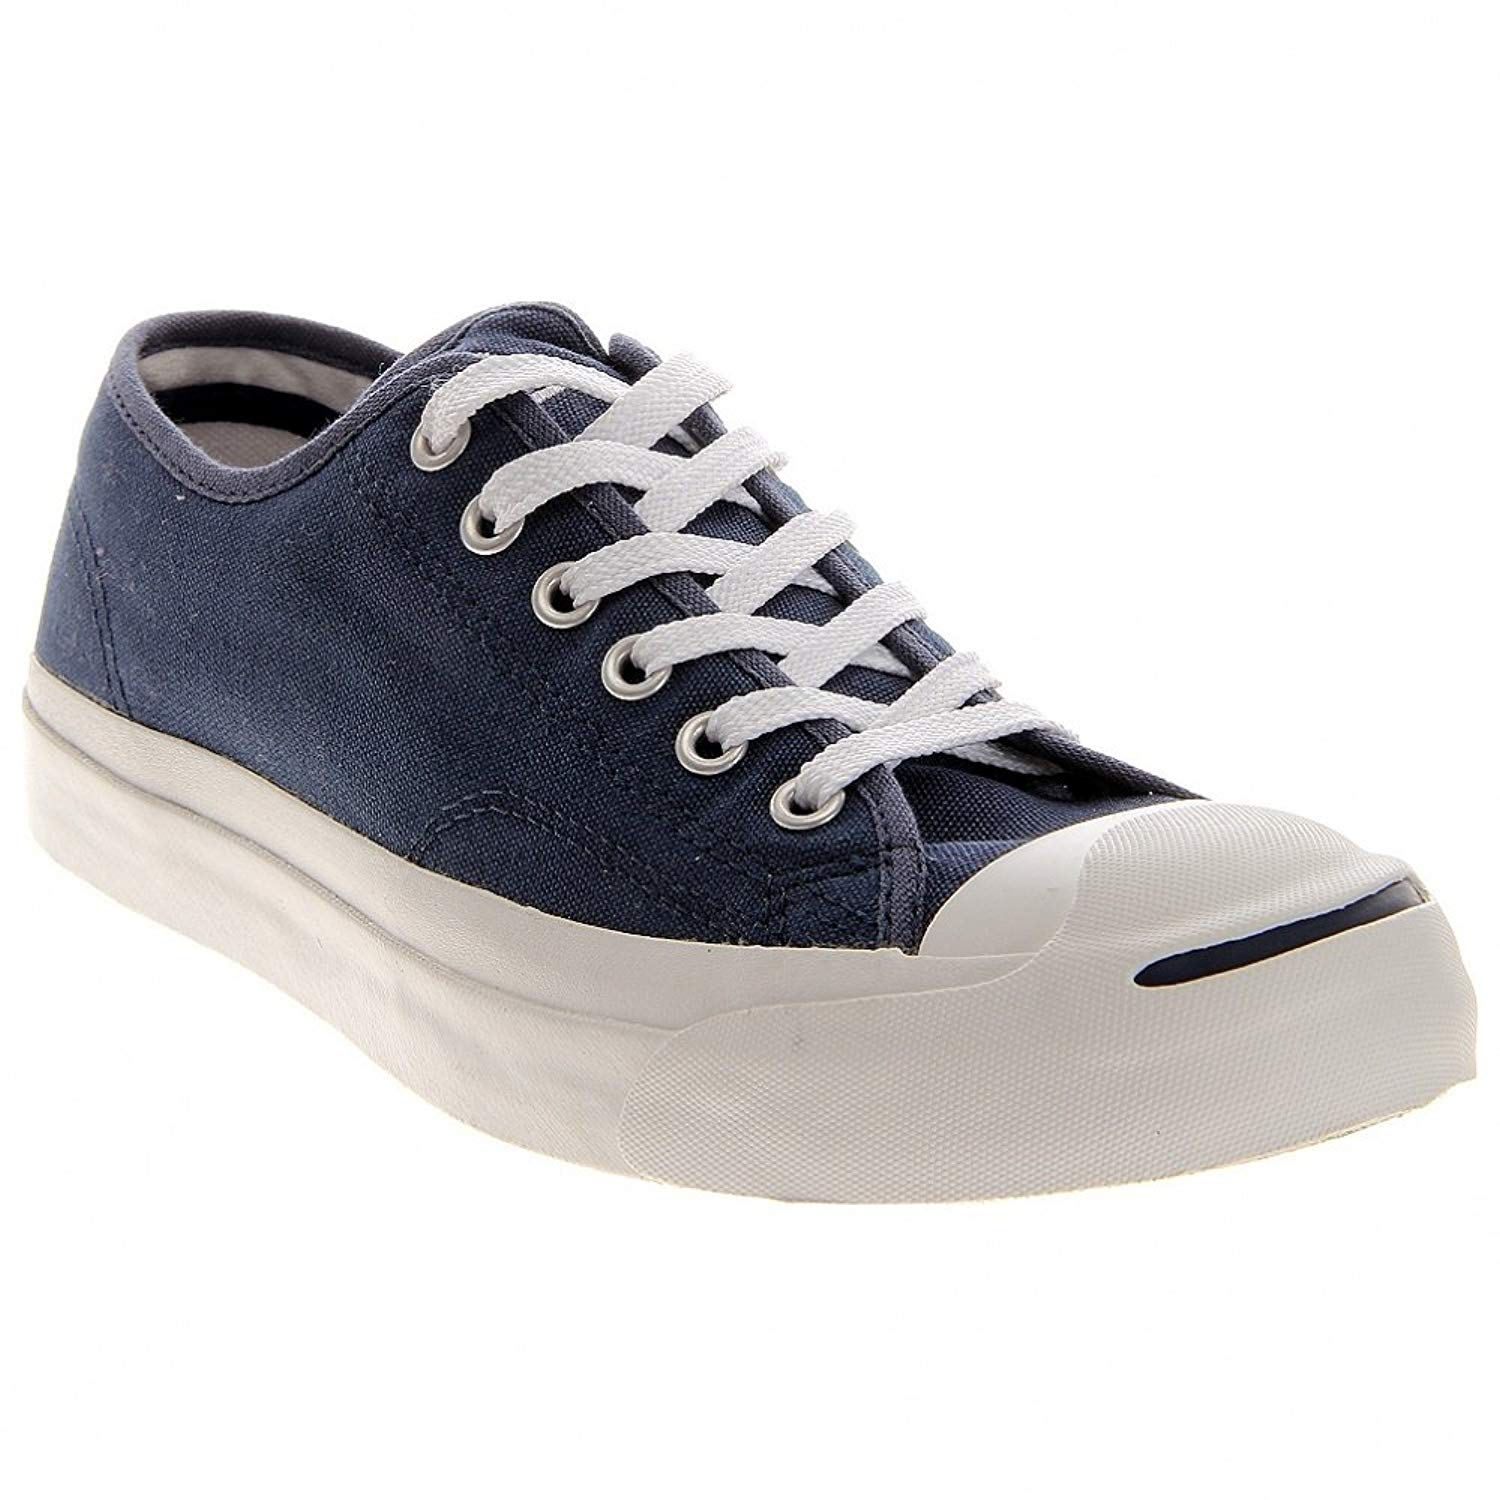 3f7c09b5085e Get Quotations · Converse Jack Purcell Athletic Women s Shoes Size